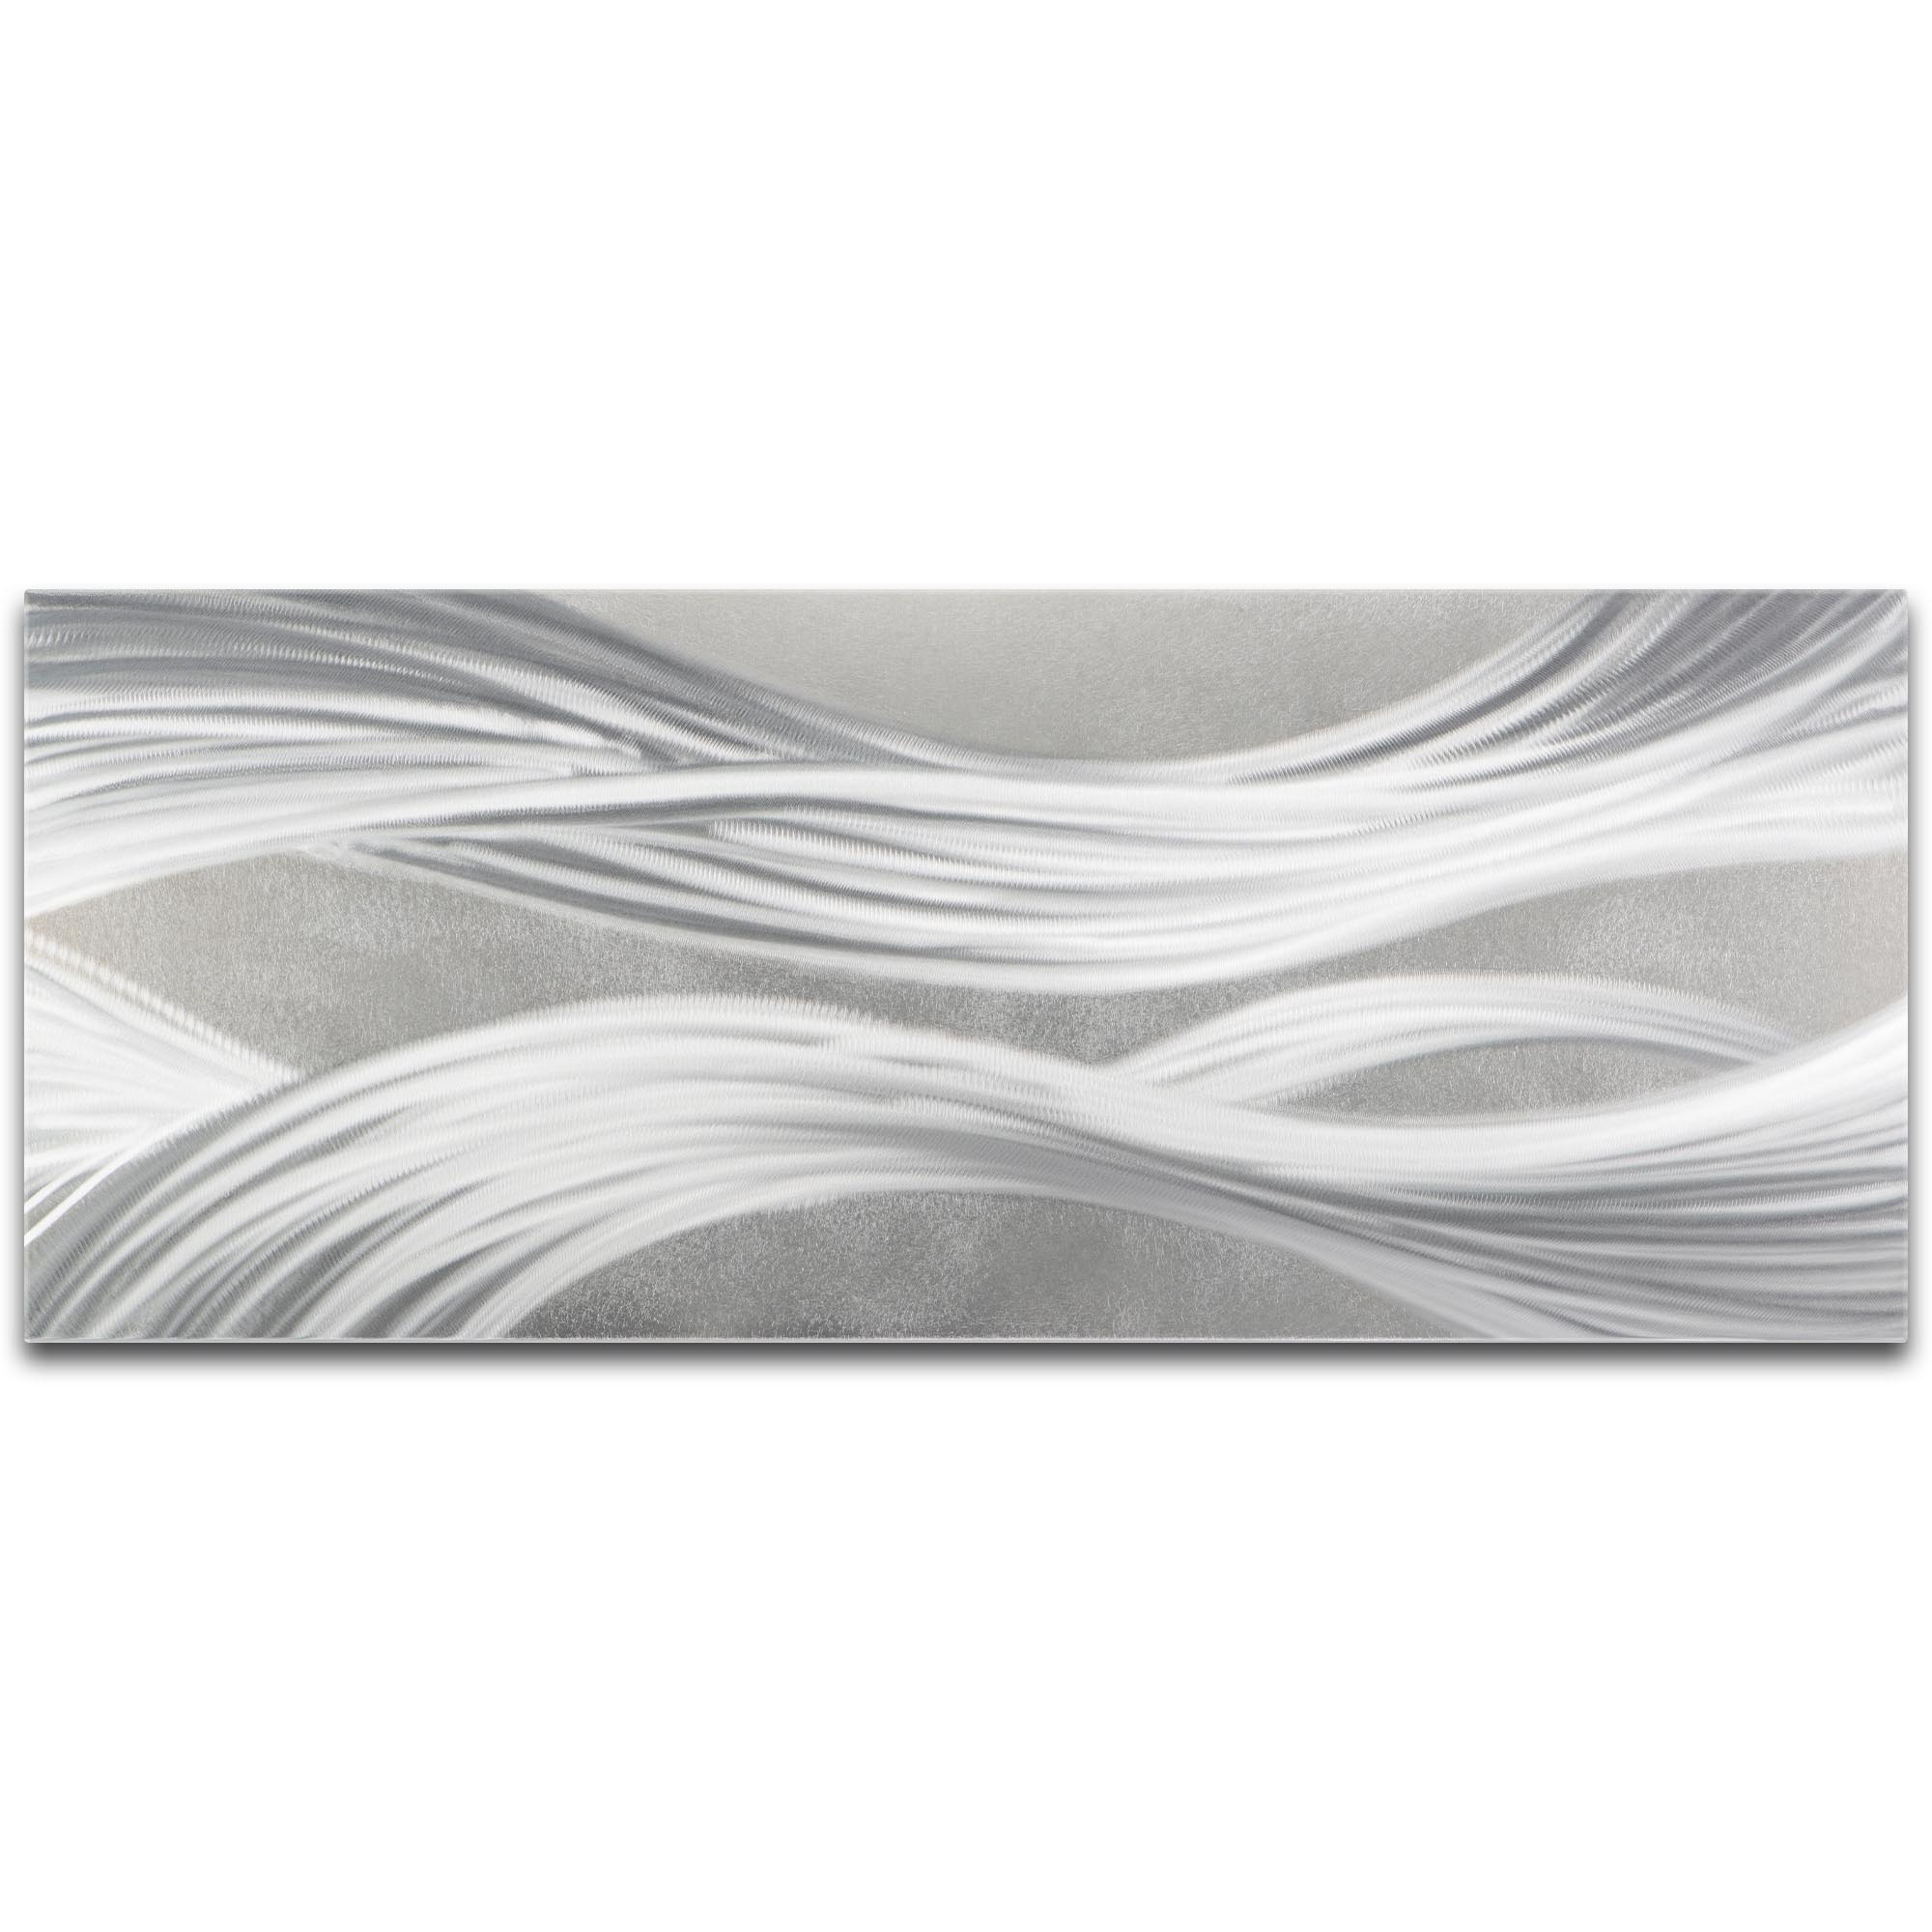 Helena Martin 'Silver Ribbons' 48in x 19in Original Abstract Metal Art on Ground Metal